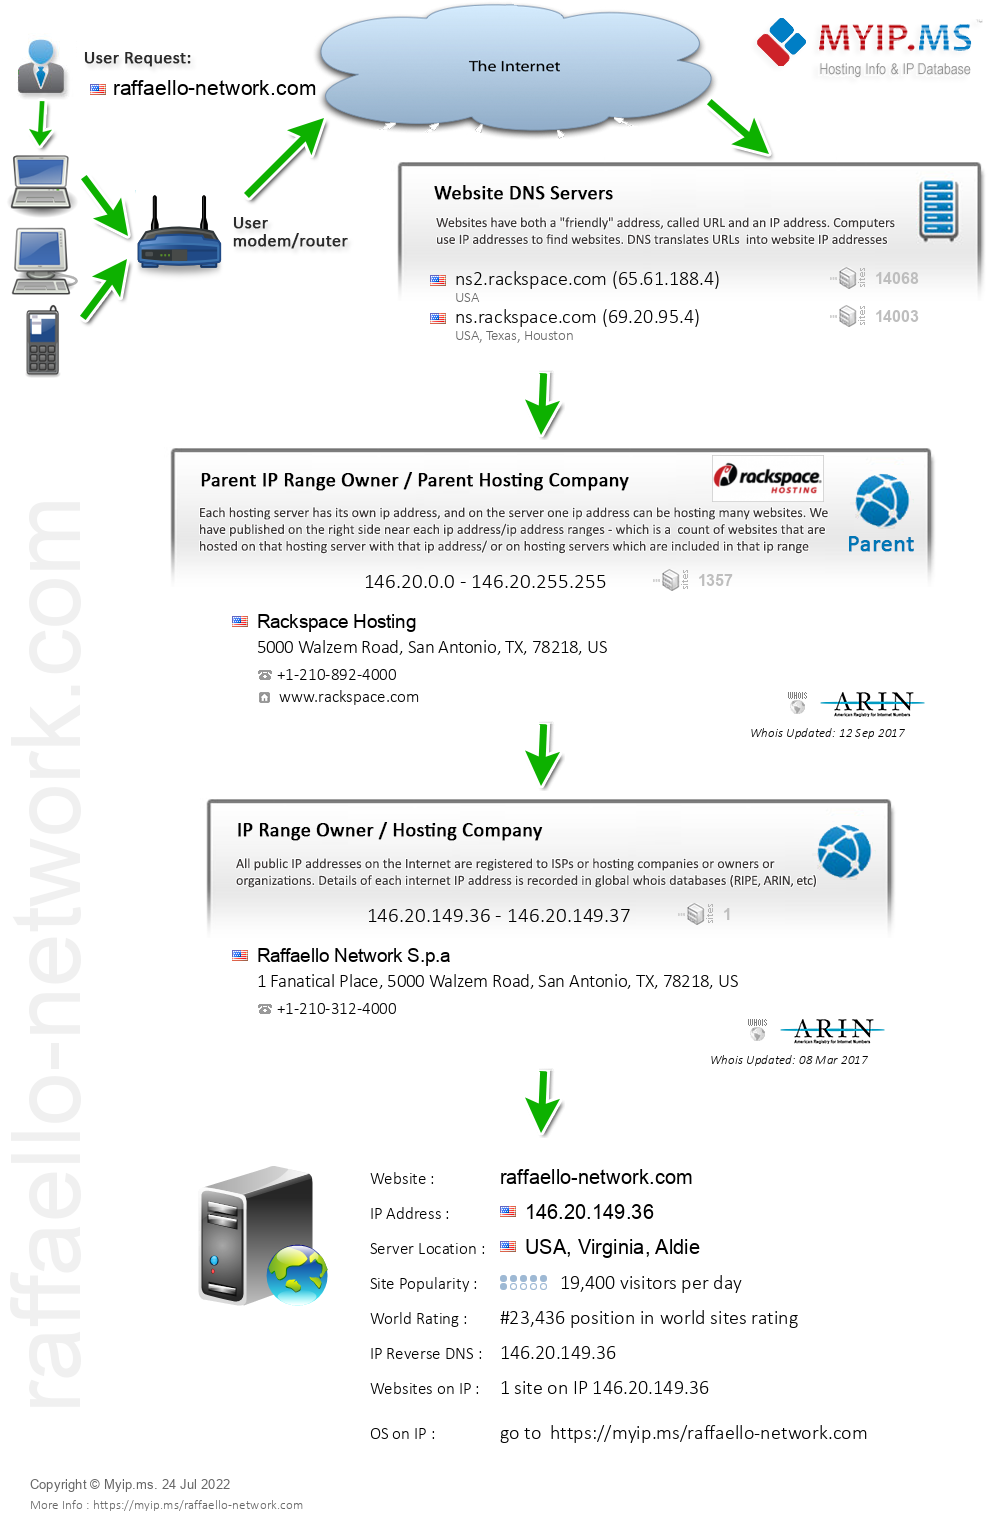 Raffaello-network.com - Website Hosting Visual IP Diagram